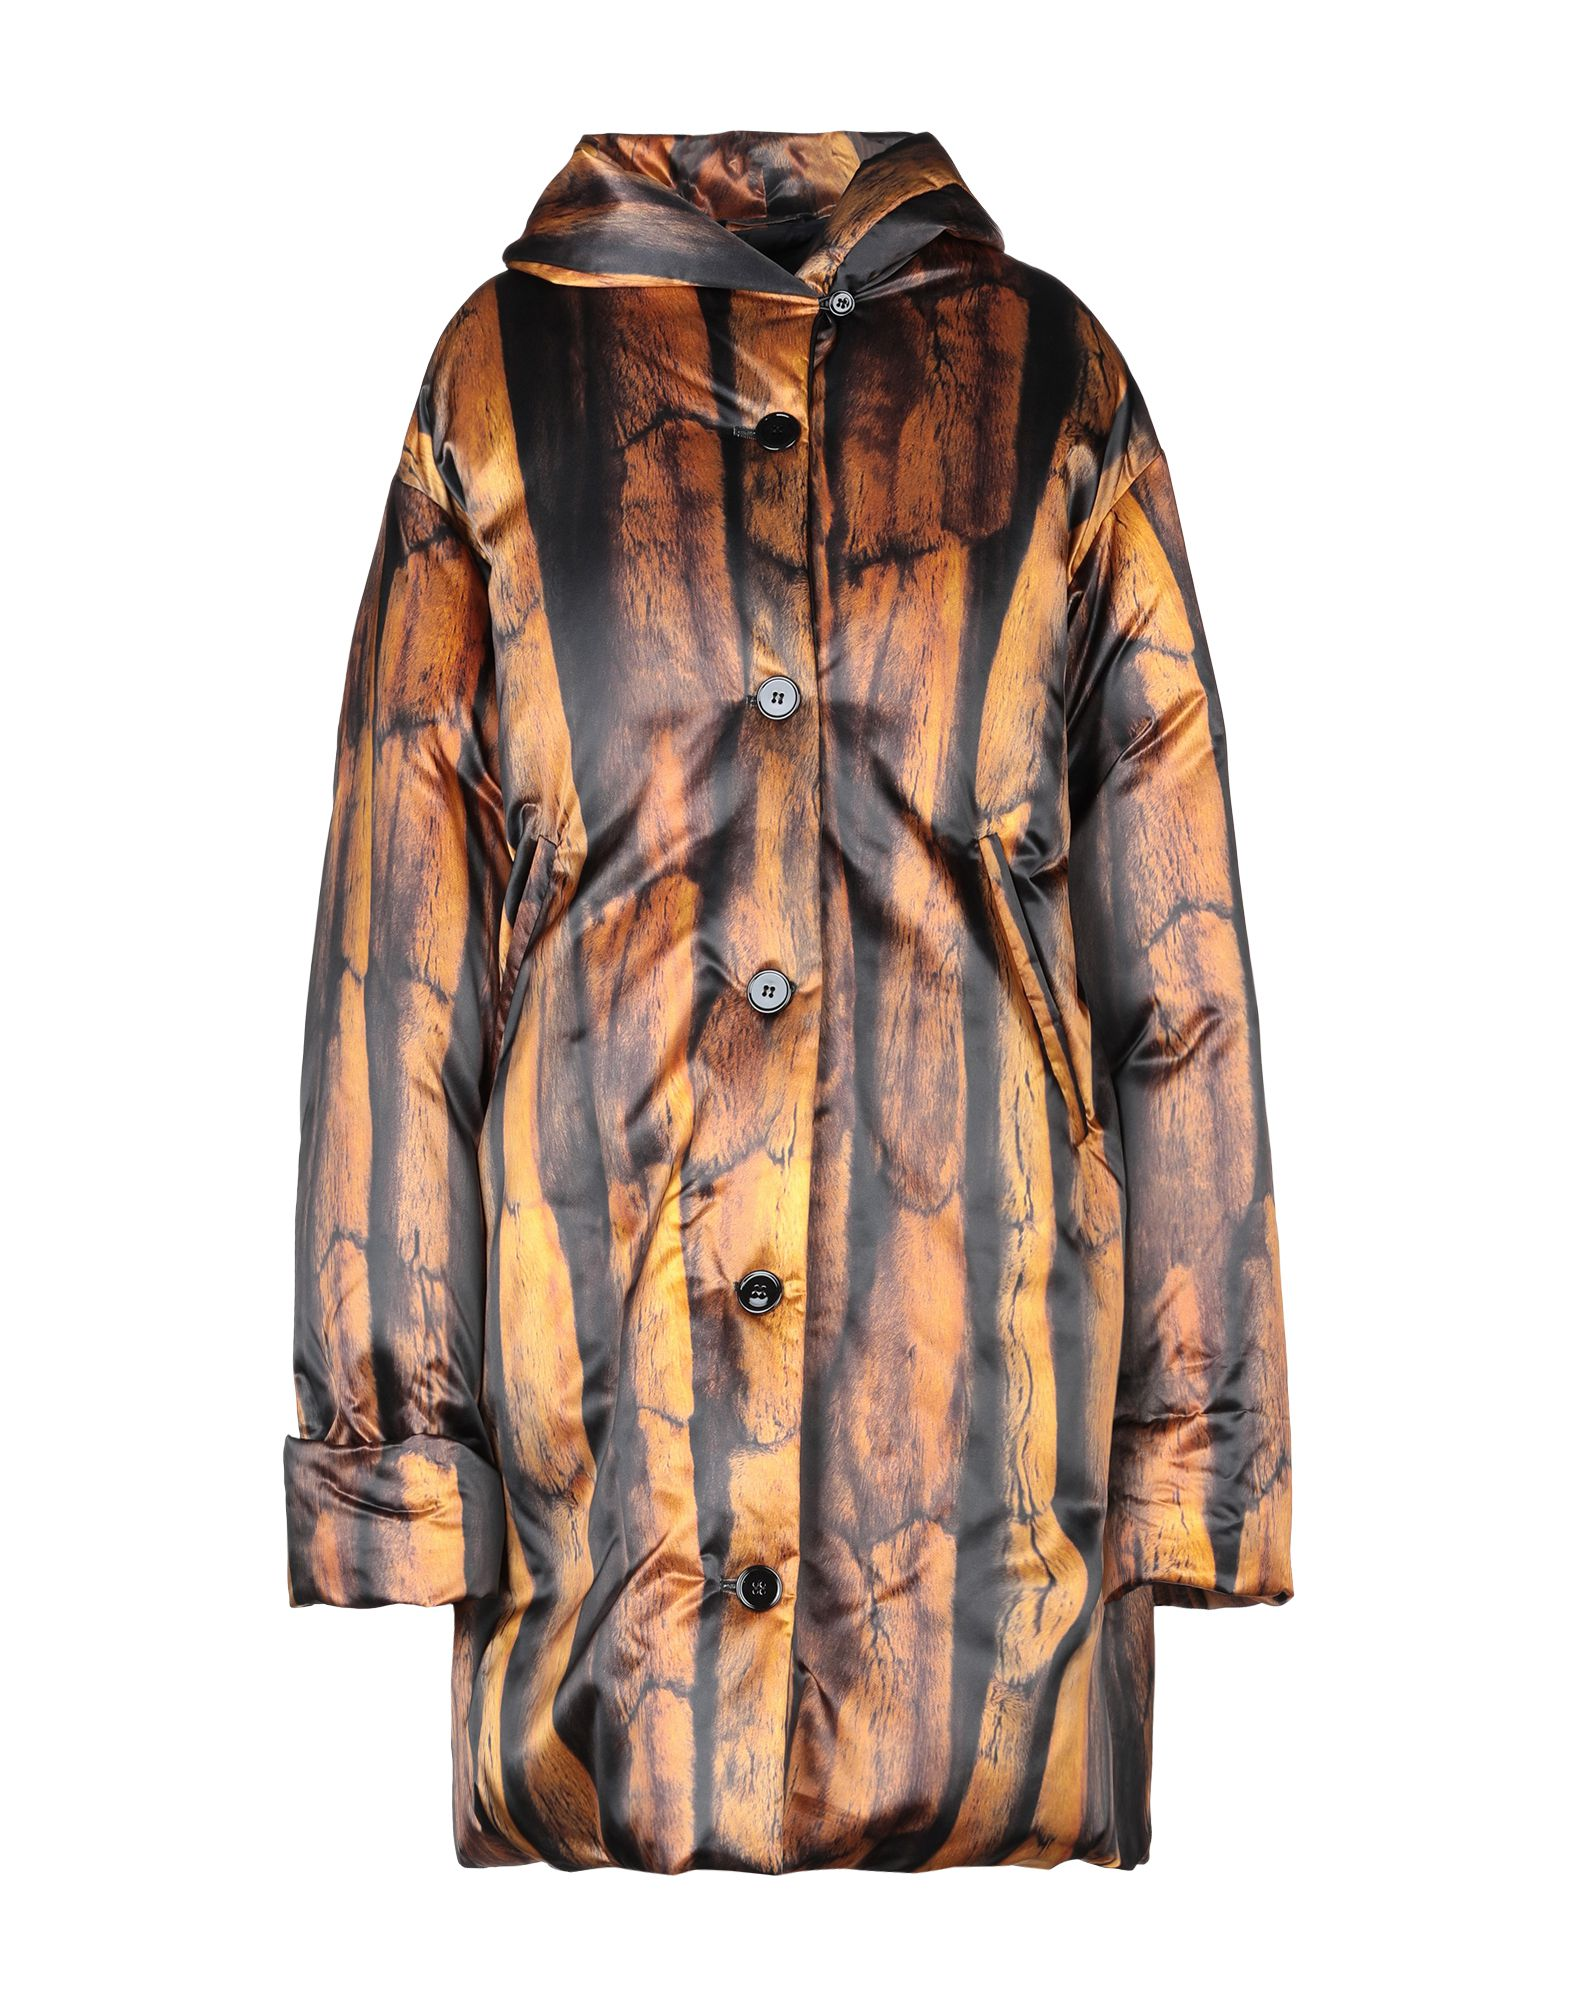 MM6 MAISON MARGIELA Down jackets. techno fabric, multicolor pattern, single-breasted, rear button closure, turtleneck, multipockets, long sleeves, duck down filling, contains non-textile parts of animal origin. 100% Polyamide